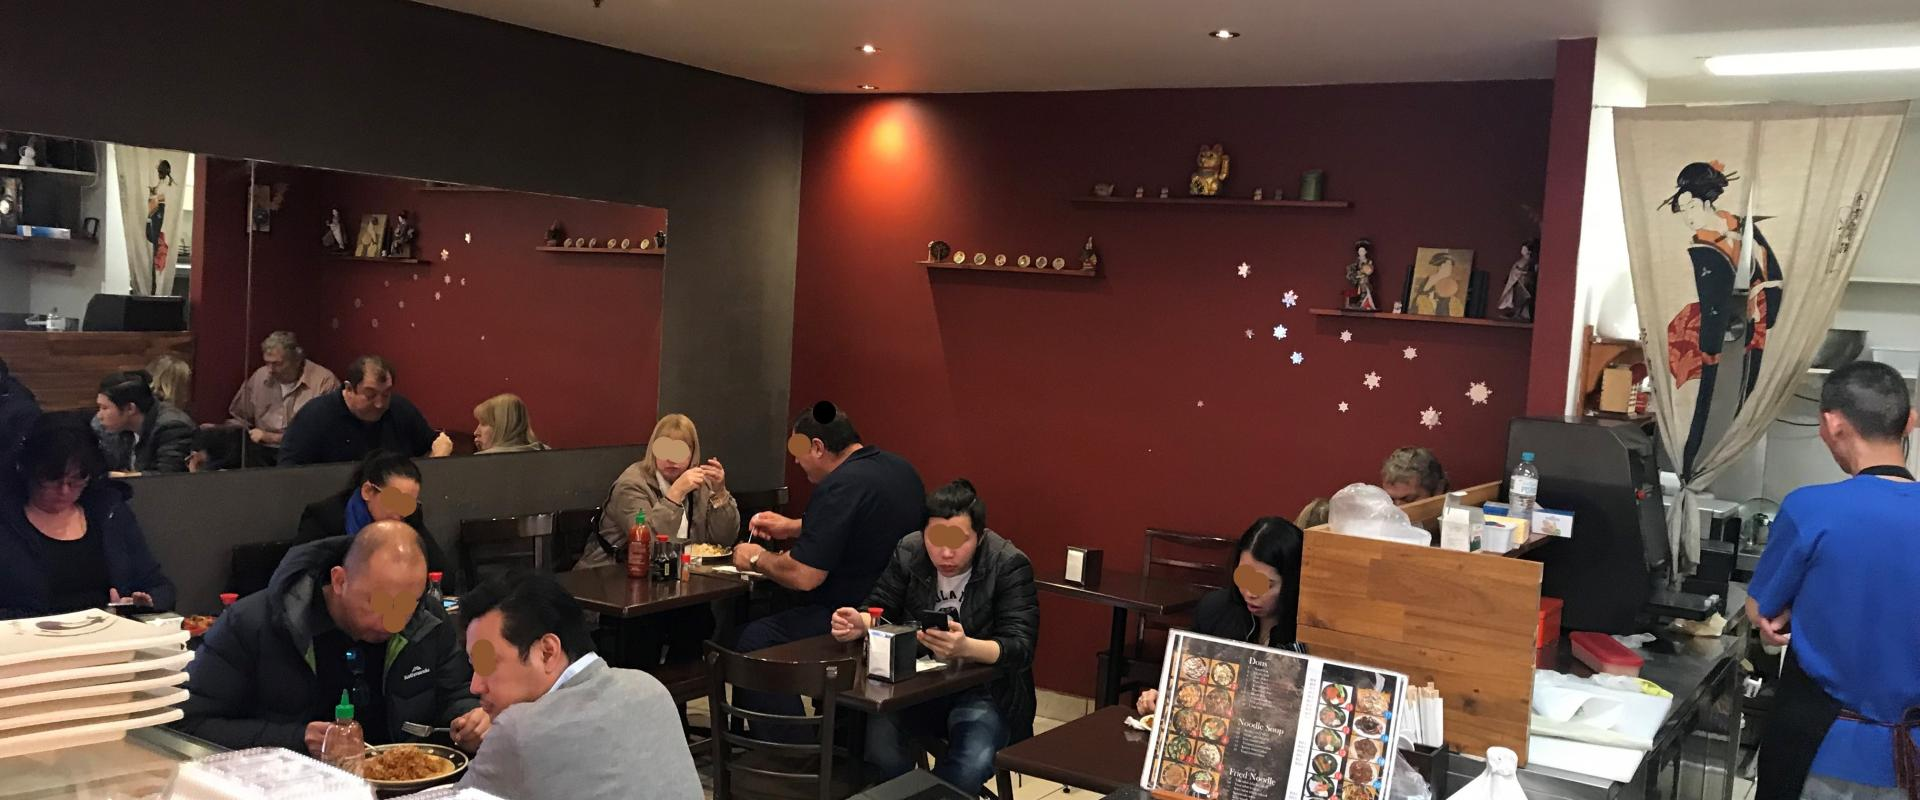 Asian Food and Sushi Bar For Sale in Melbourne contact Roger Zhao